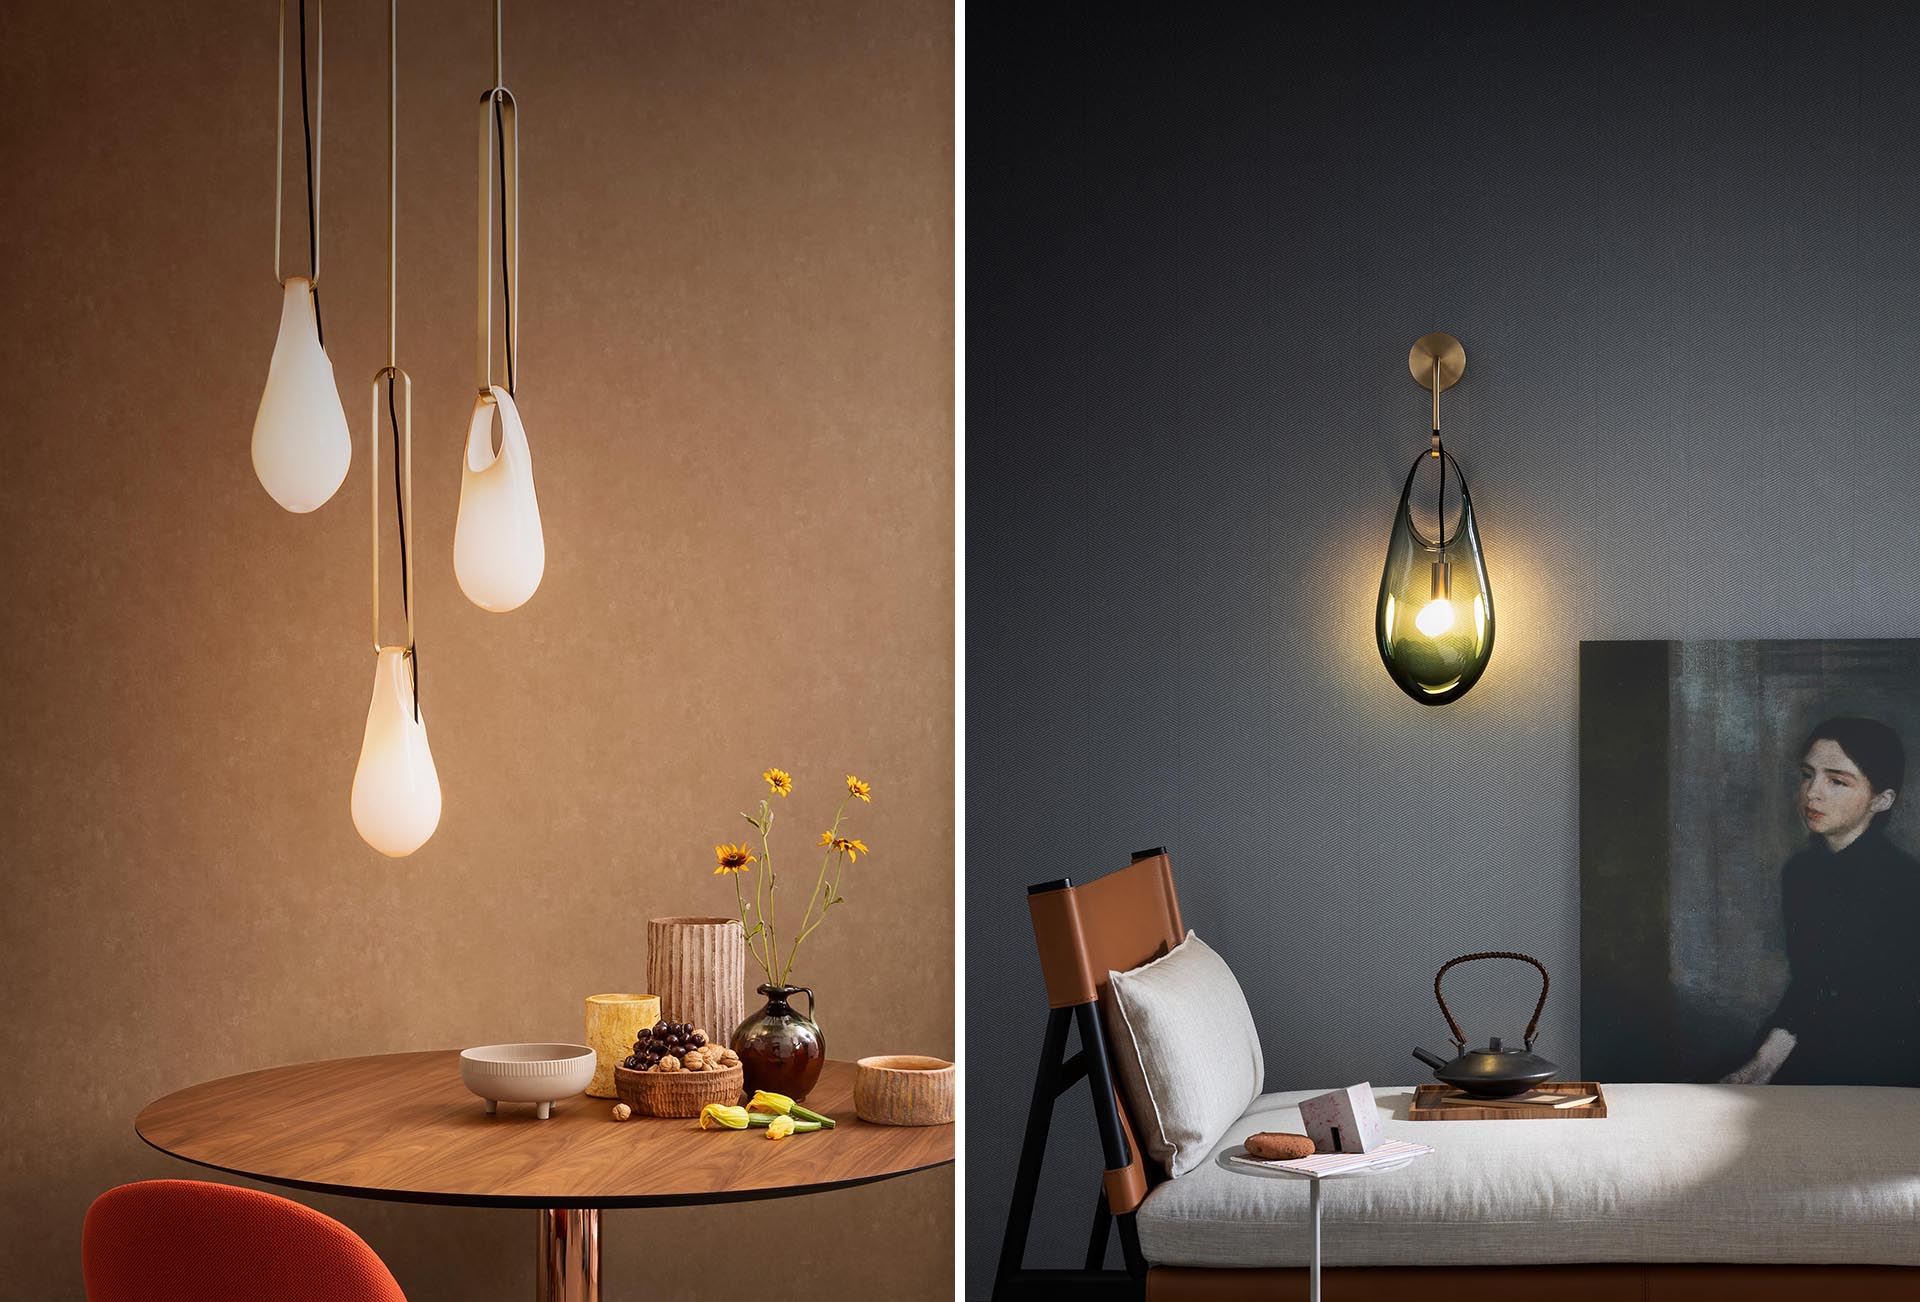 The Hold pendant lights and sconces, are modern handblown glass lights that look like they're hanging from hooks.